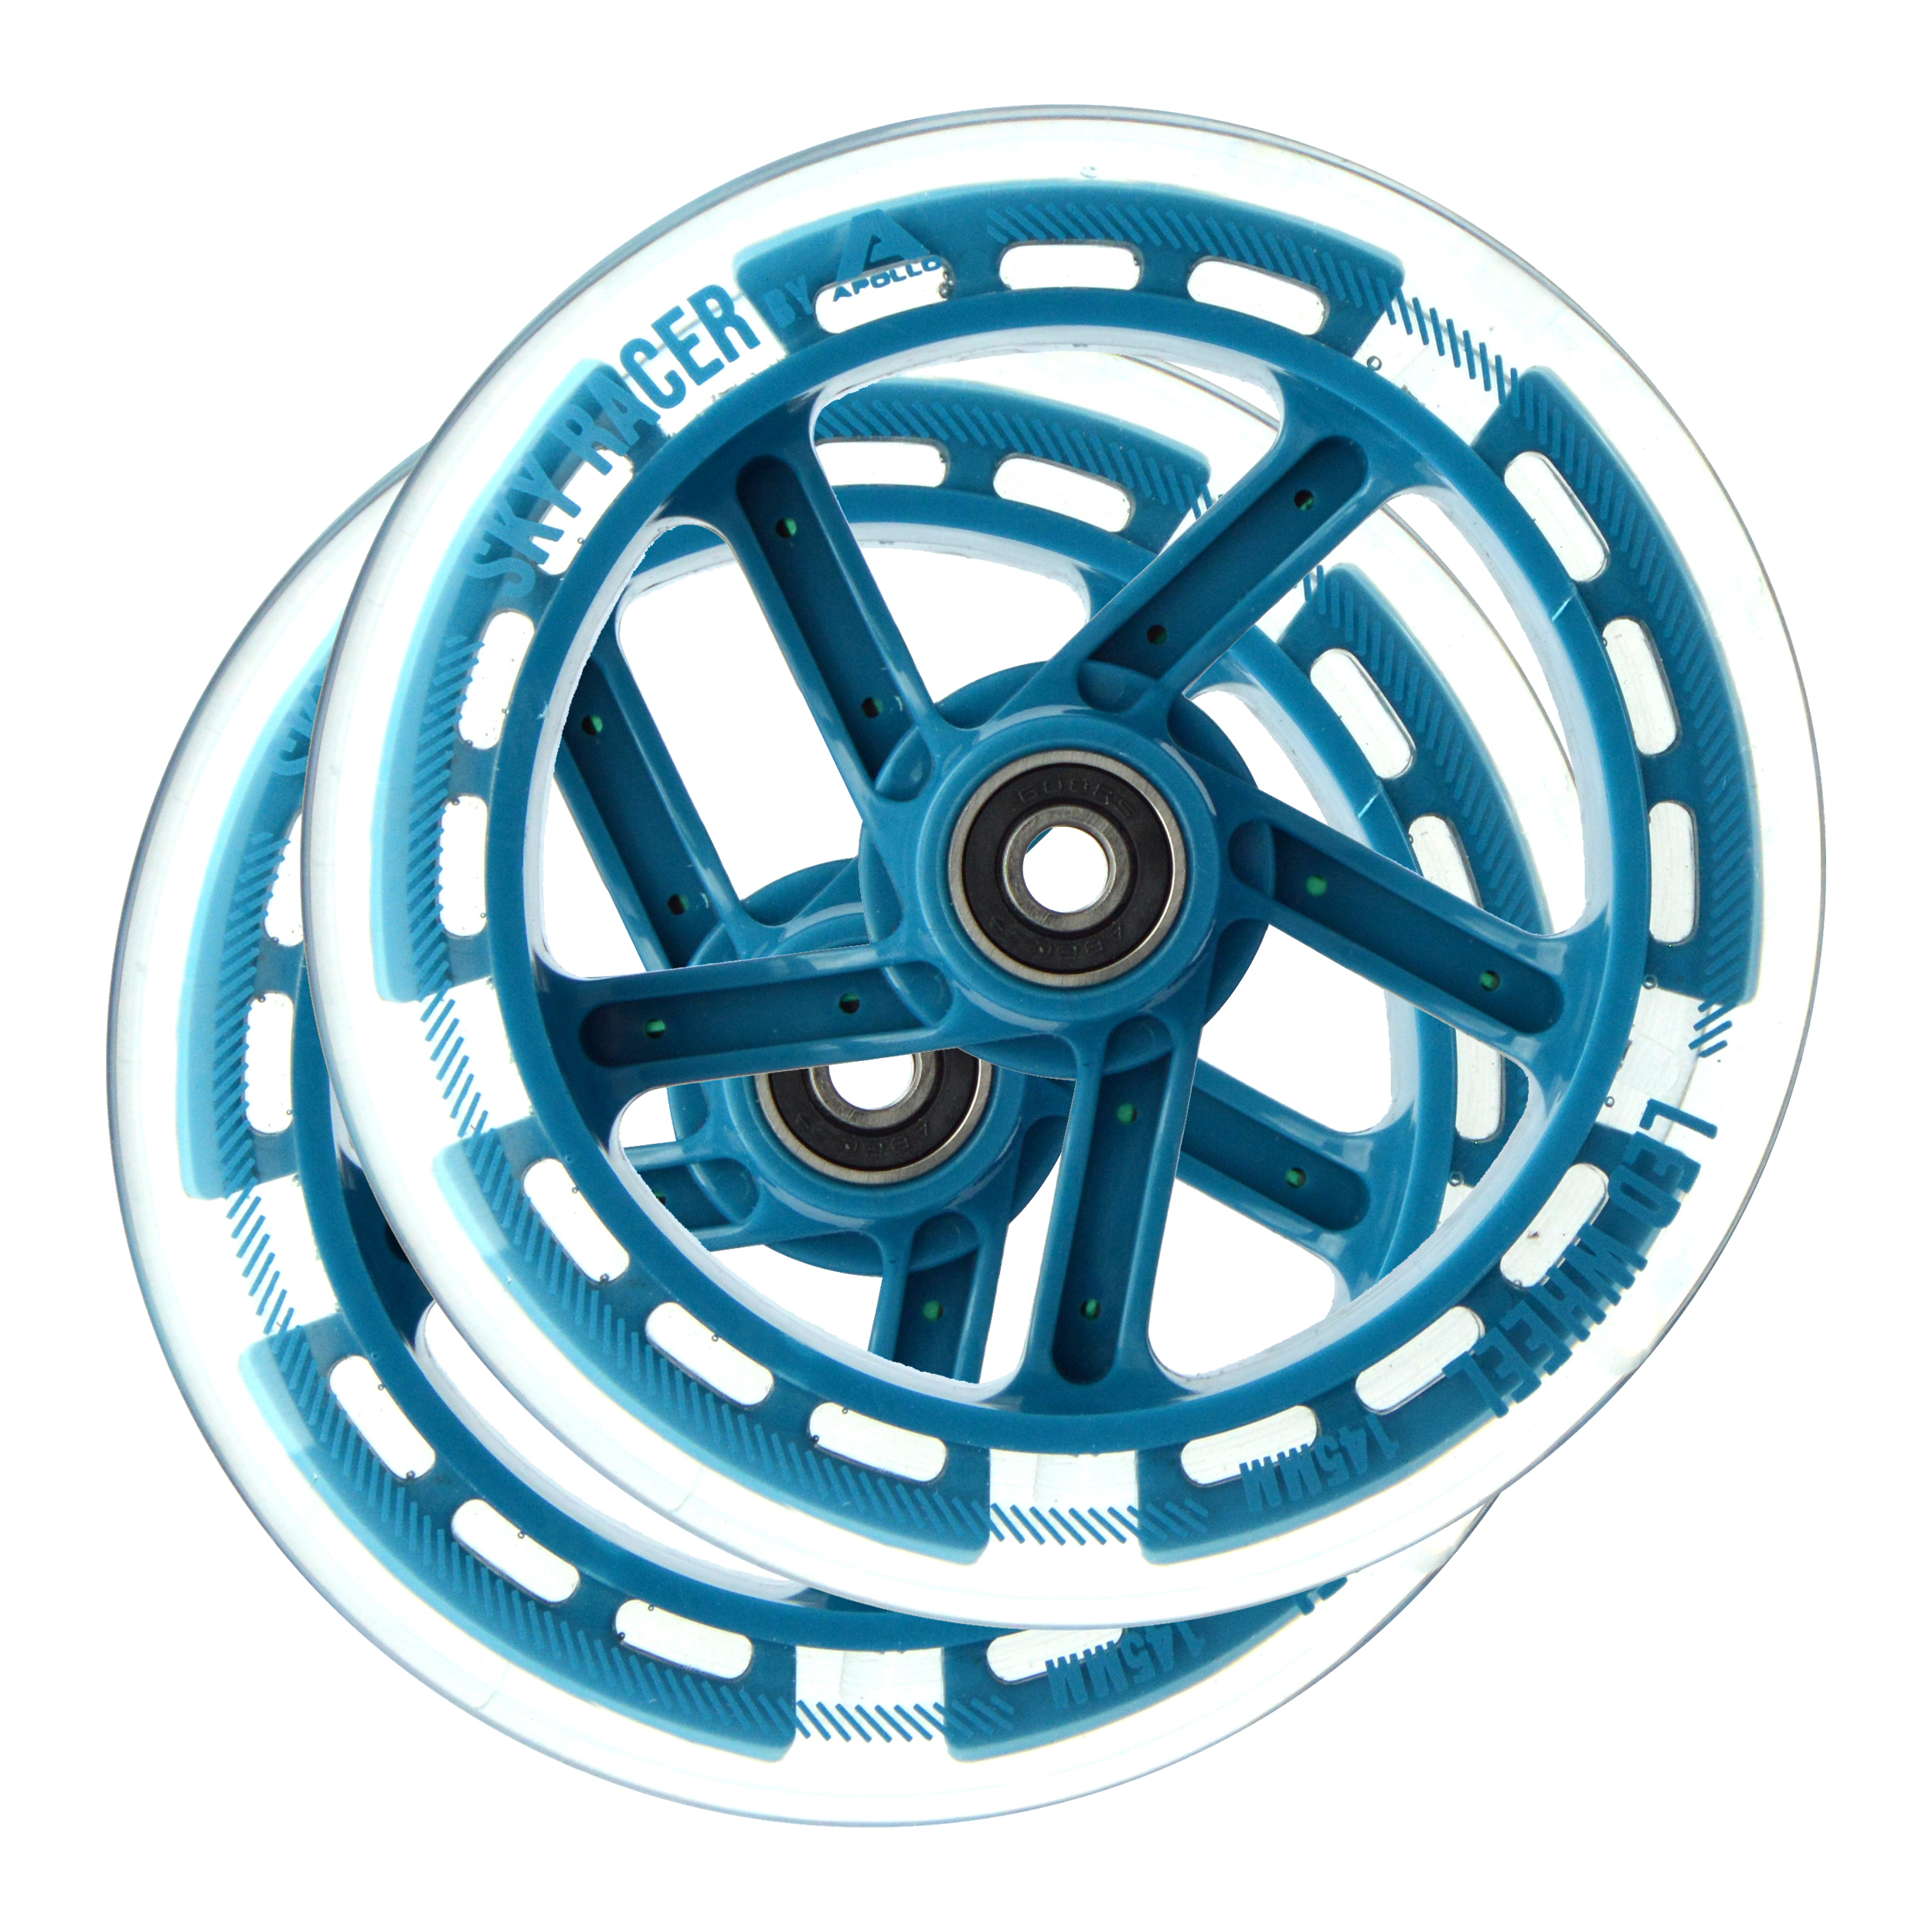 Apollo Wheel Set Skyracer - Ersatzräderset -Blau ABEC 7 Kugellager